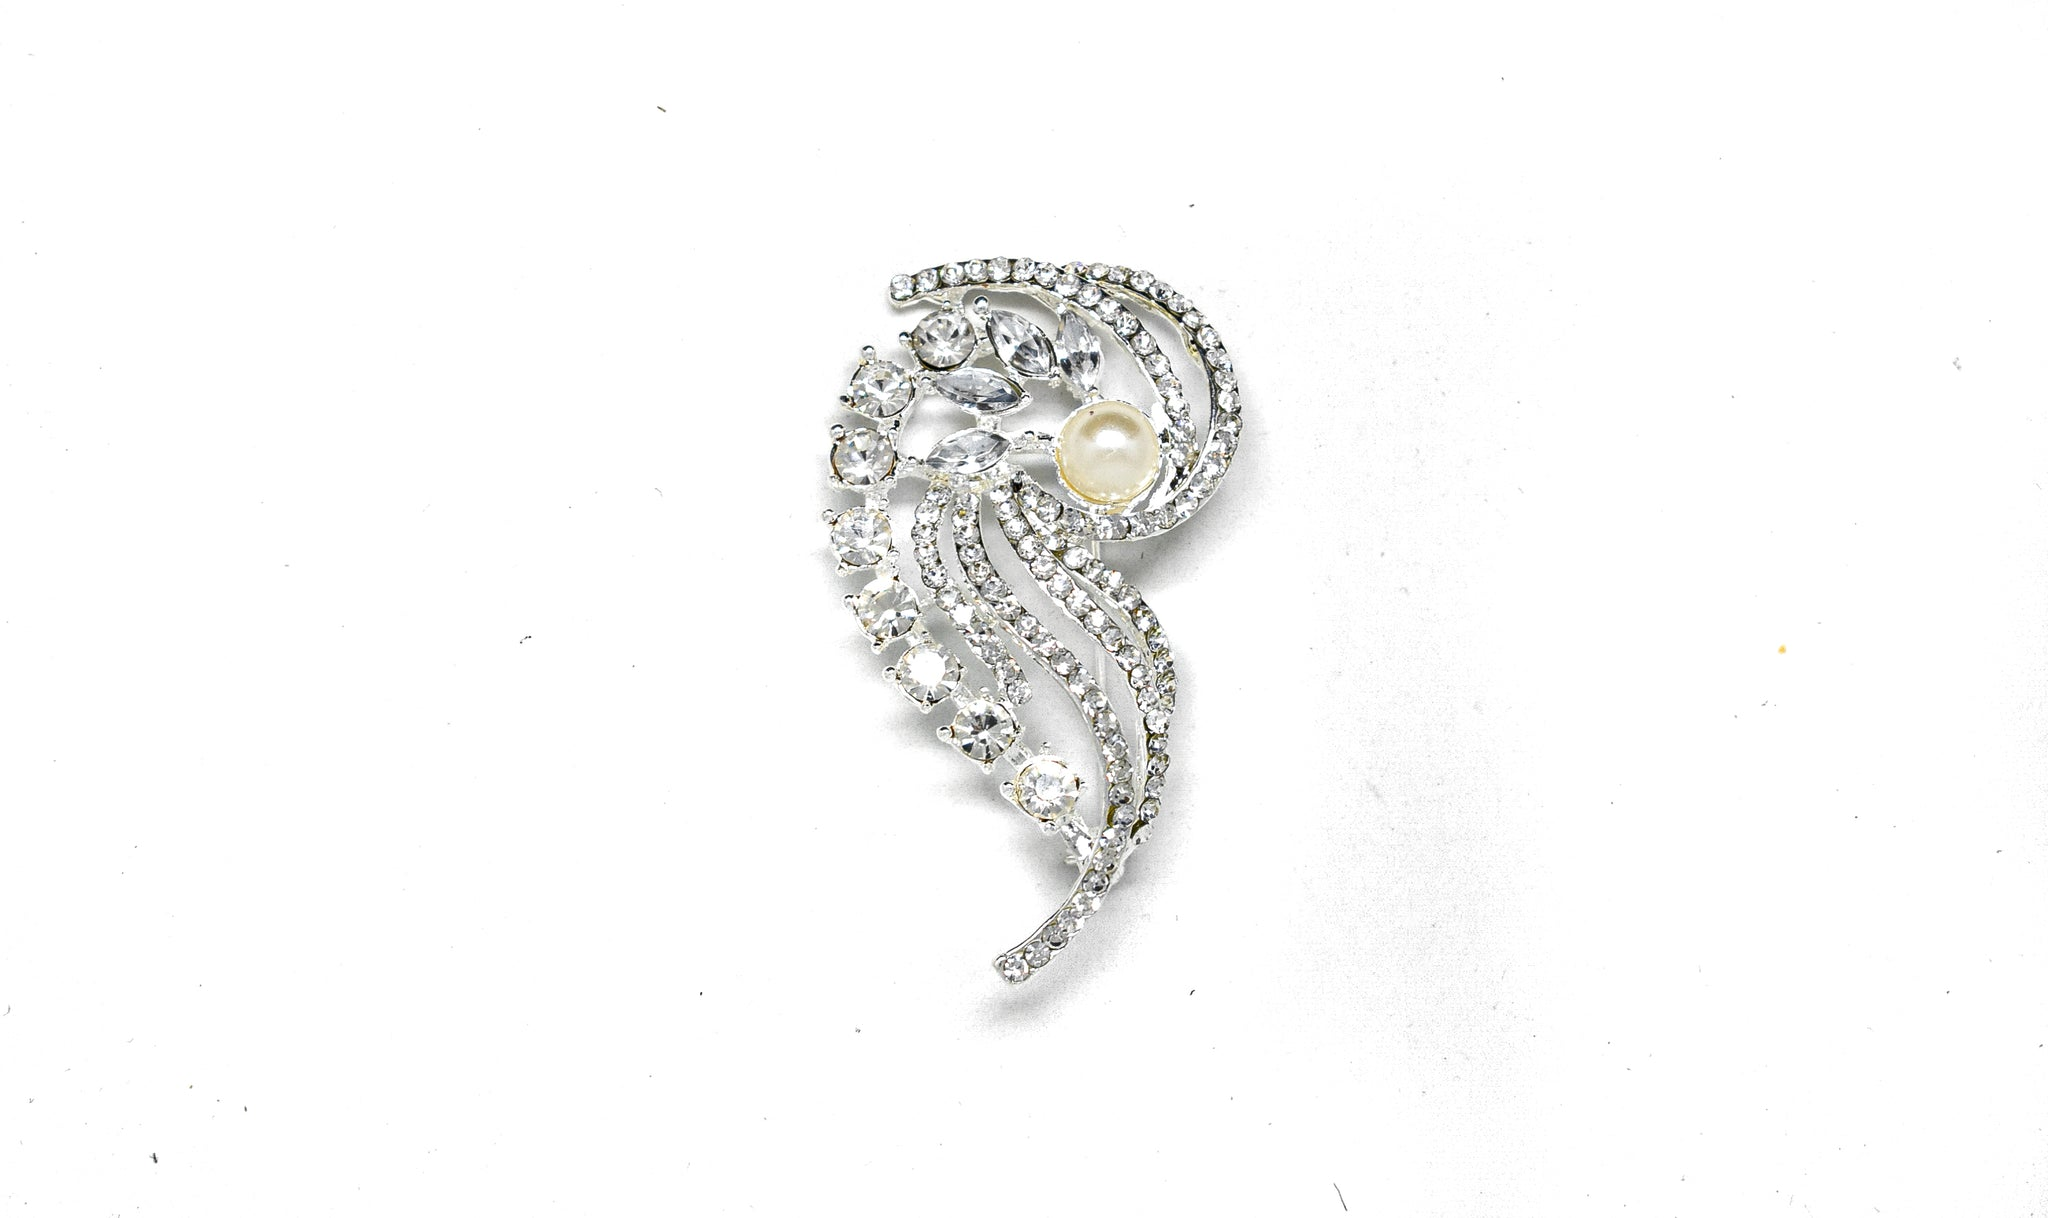 "3"" x 2.5"" Rhinestone Pin Brooch with Pearl"